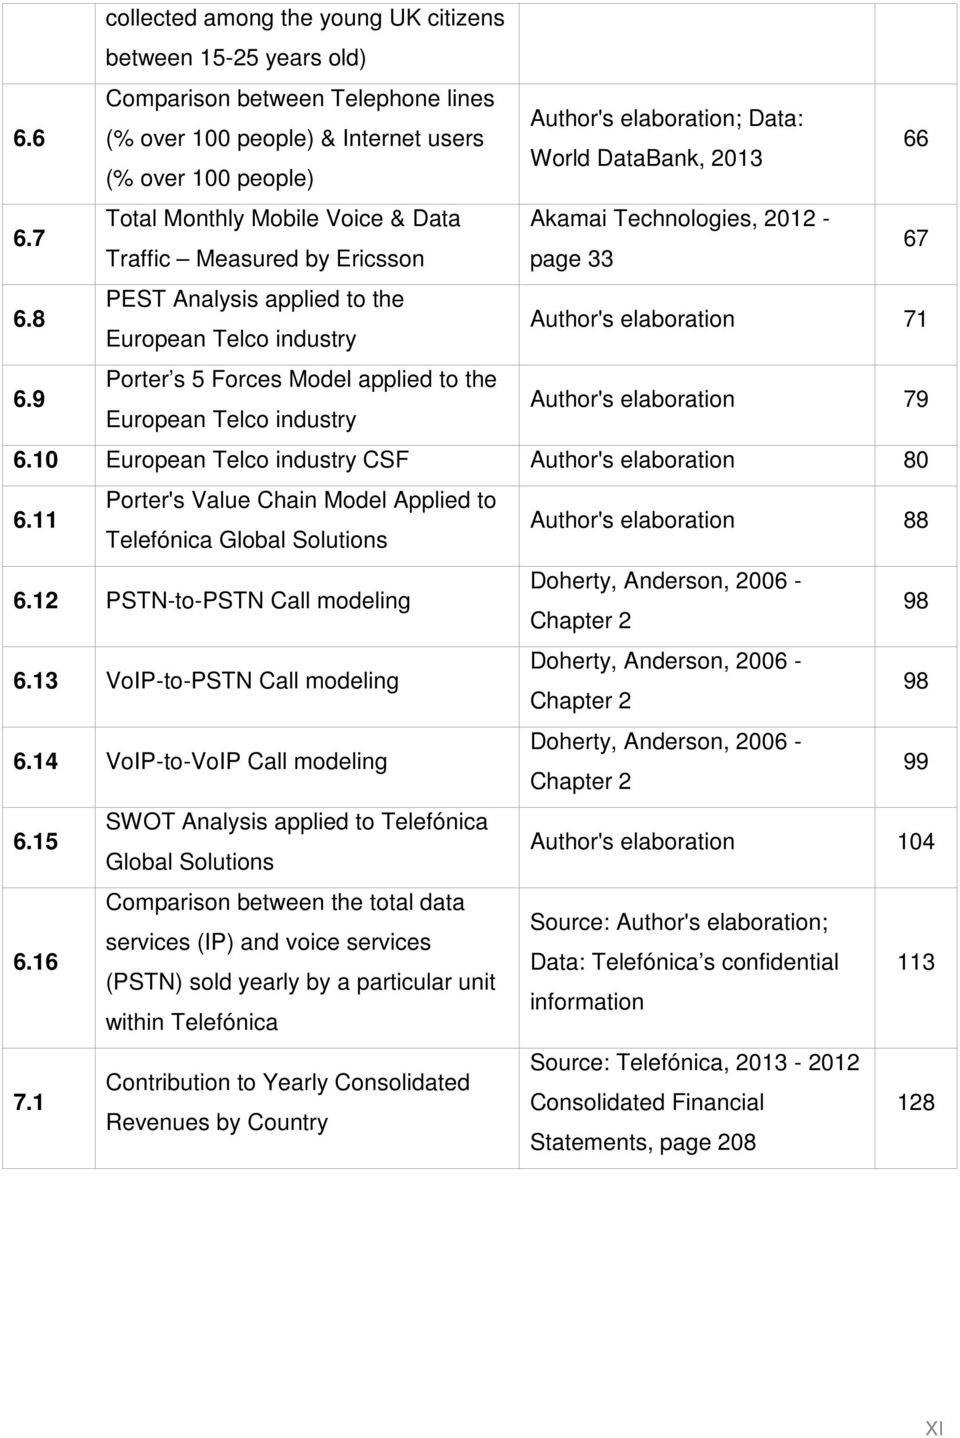 7 Total Monthly Mobile Voice & Data Akamai Technologies, 2012 - Traffic Measured by Ericsson page 33 67 6.8 PEST Analysis applied to the European Telco industry Author's elaboration 71 6.